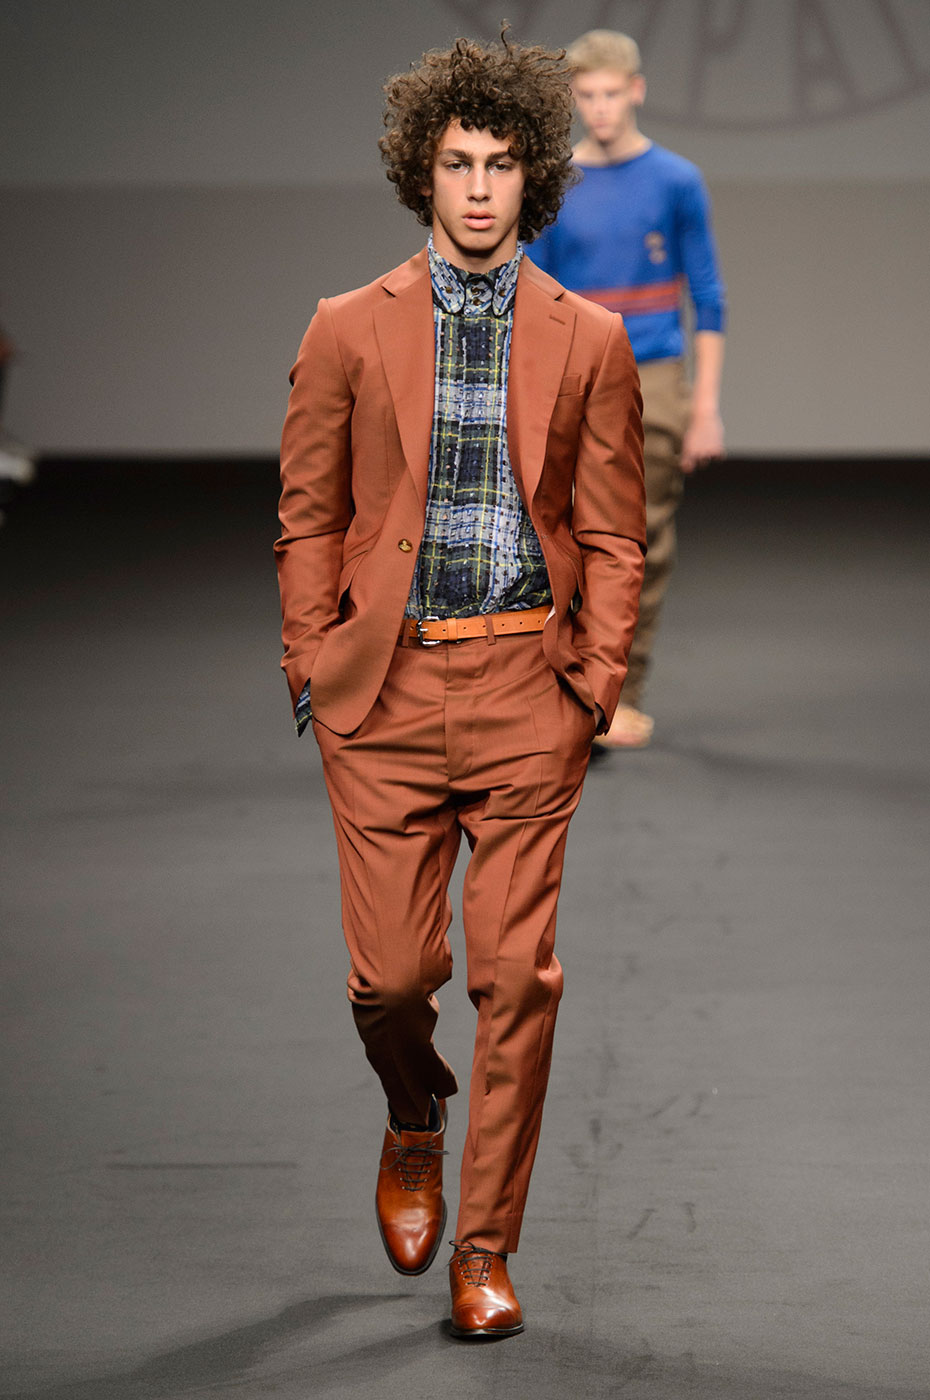 479db493639256 Top Menswear Trends From Milan Fashion Week SS16